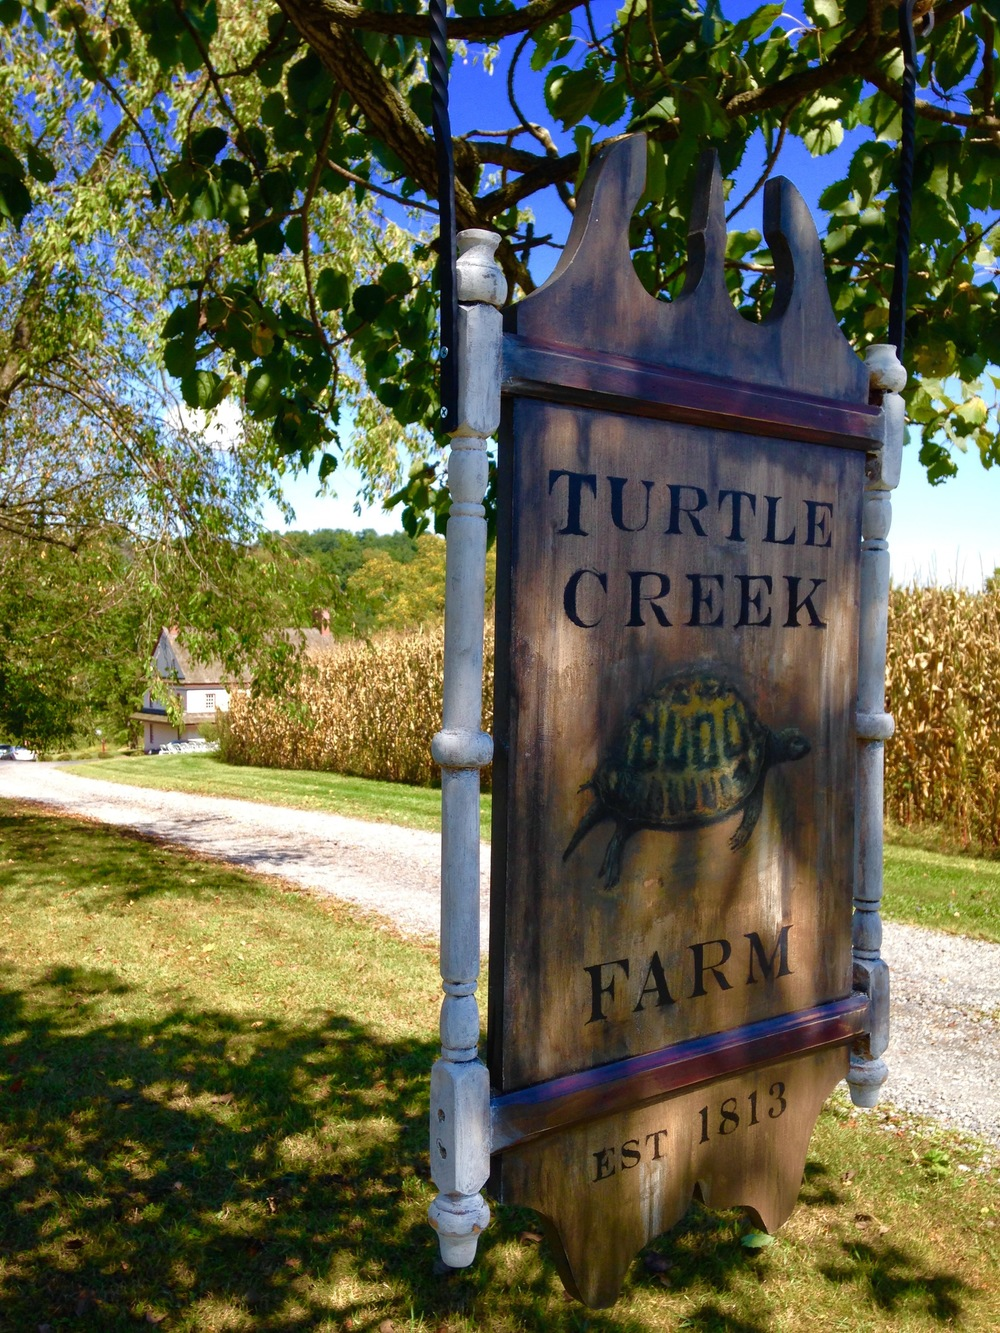 Turtle Creek Farm